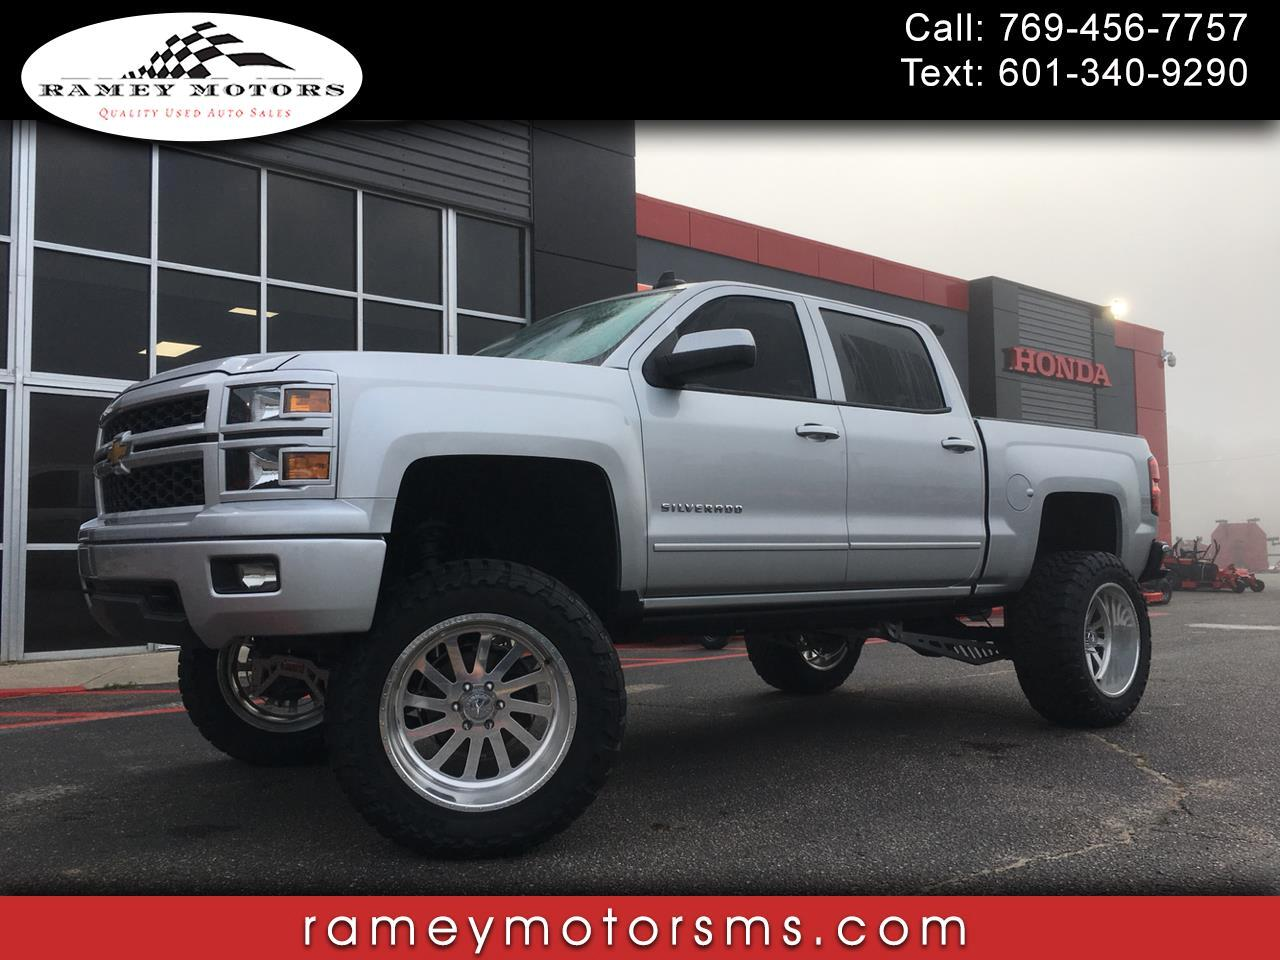 2015 Chevrolet Silverado 1500 4WD CREWCAB CUSTOM LIFTED LT Z71